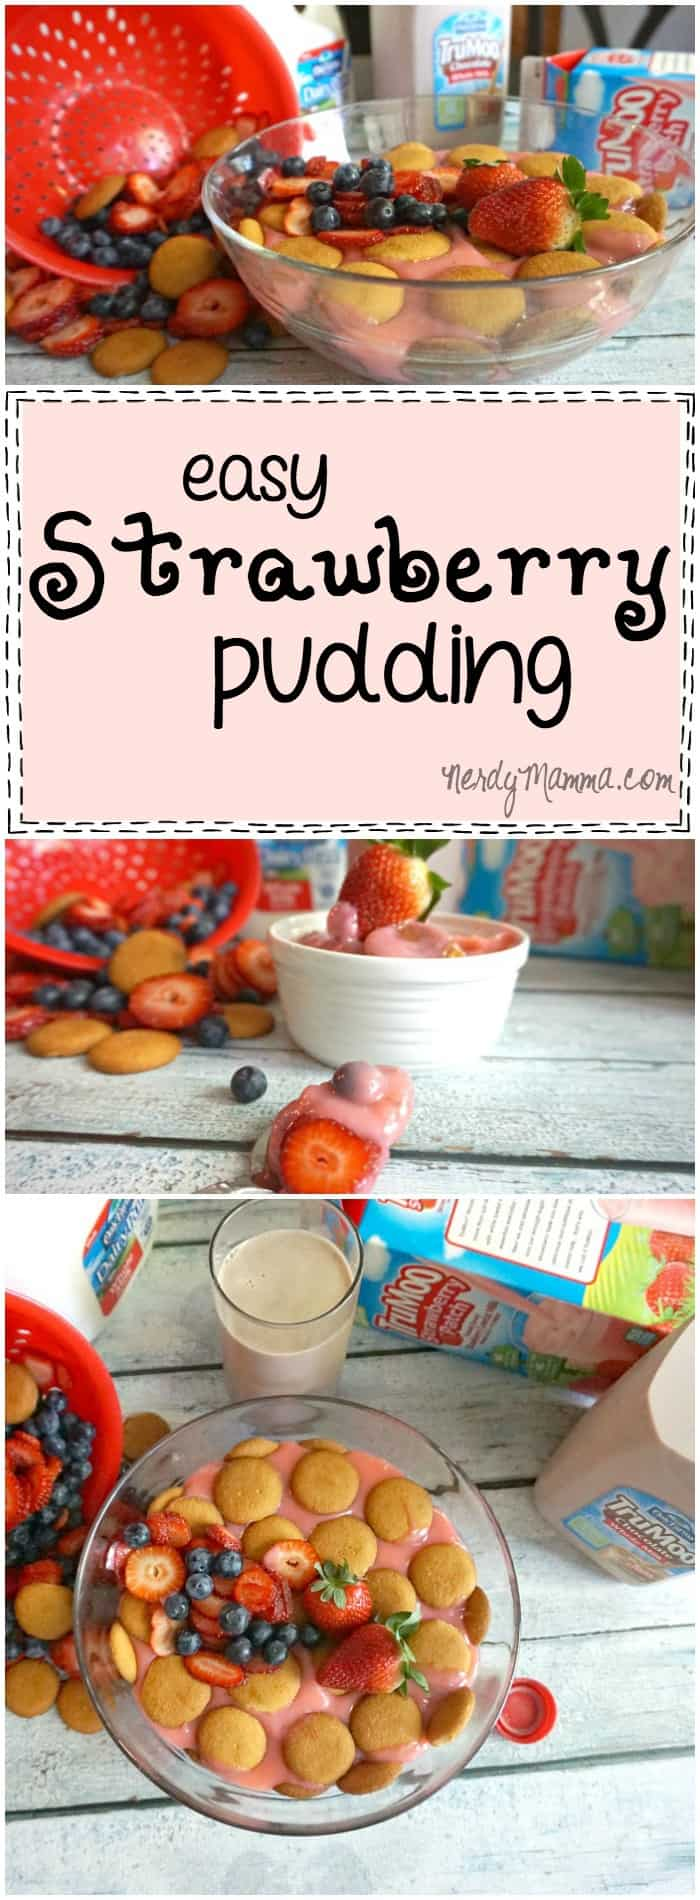 I love this recipe for easy Strawberry Pudding! It's like banana pudding, but with strawberries...how genius!